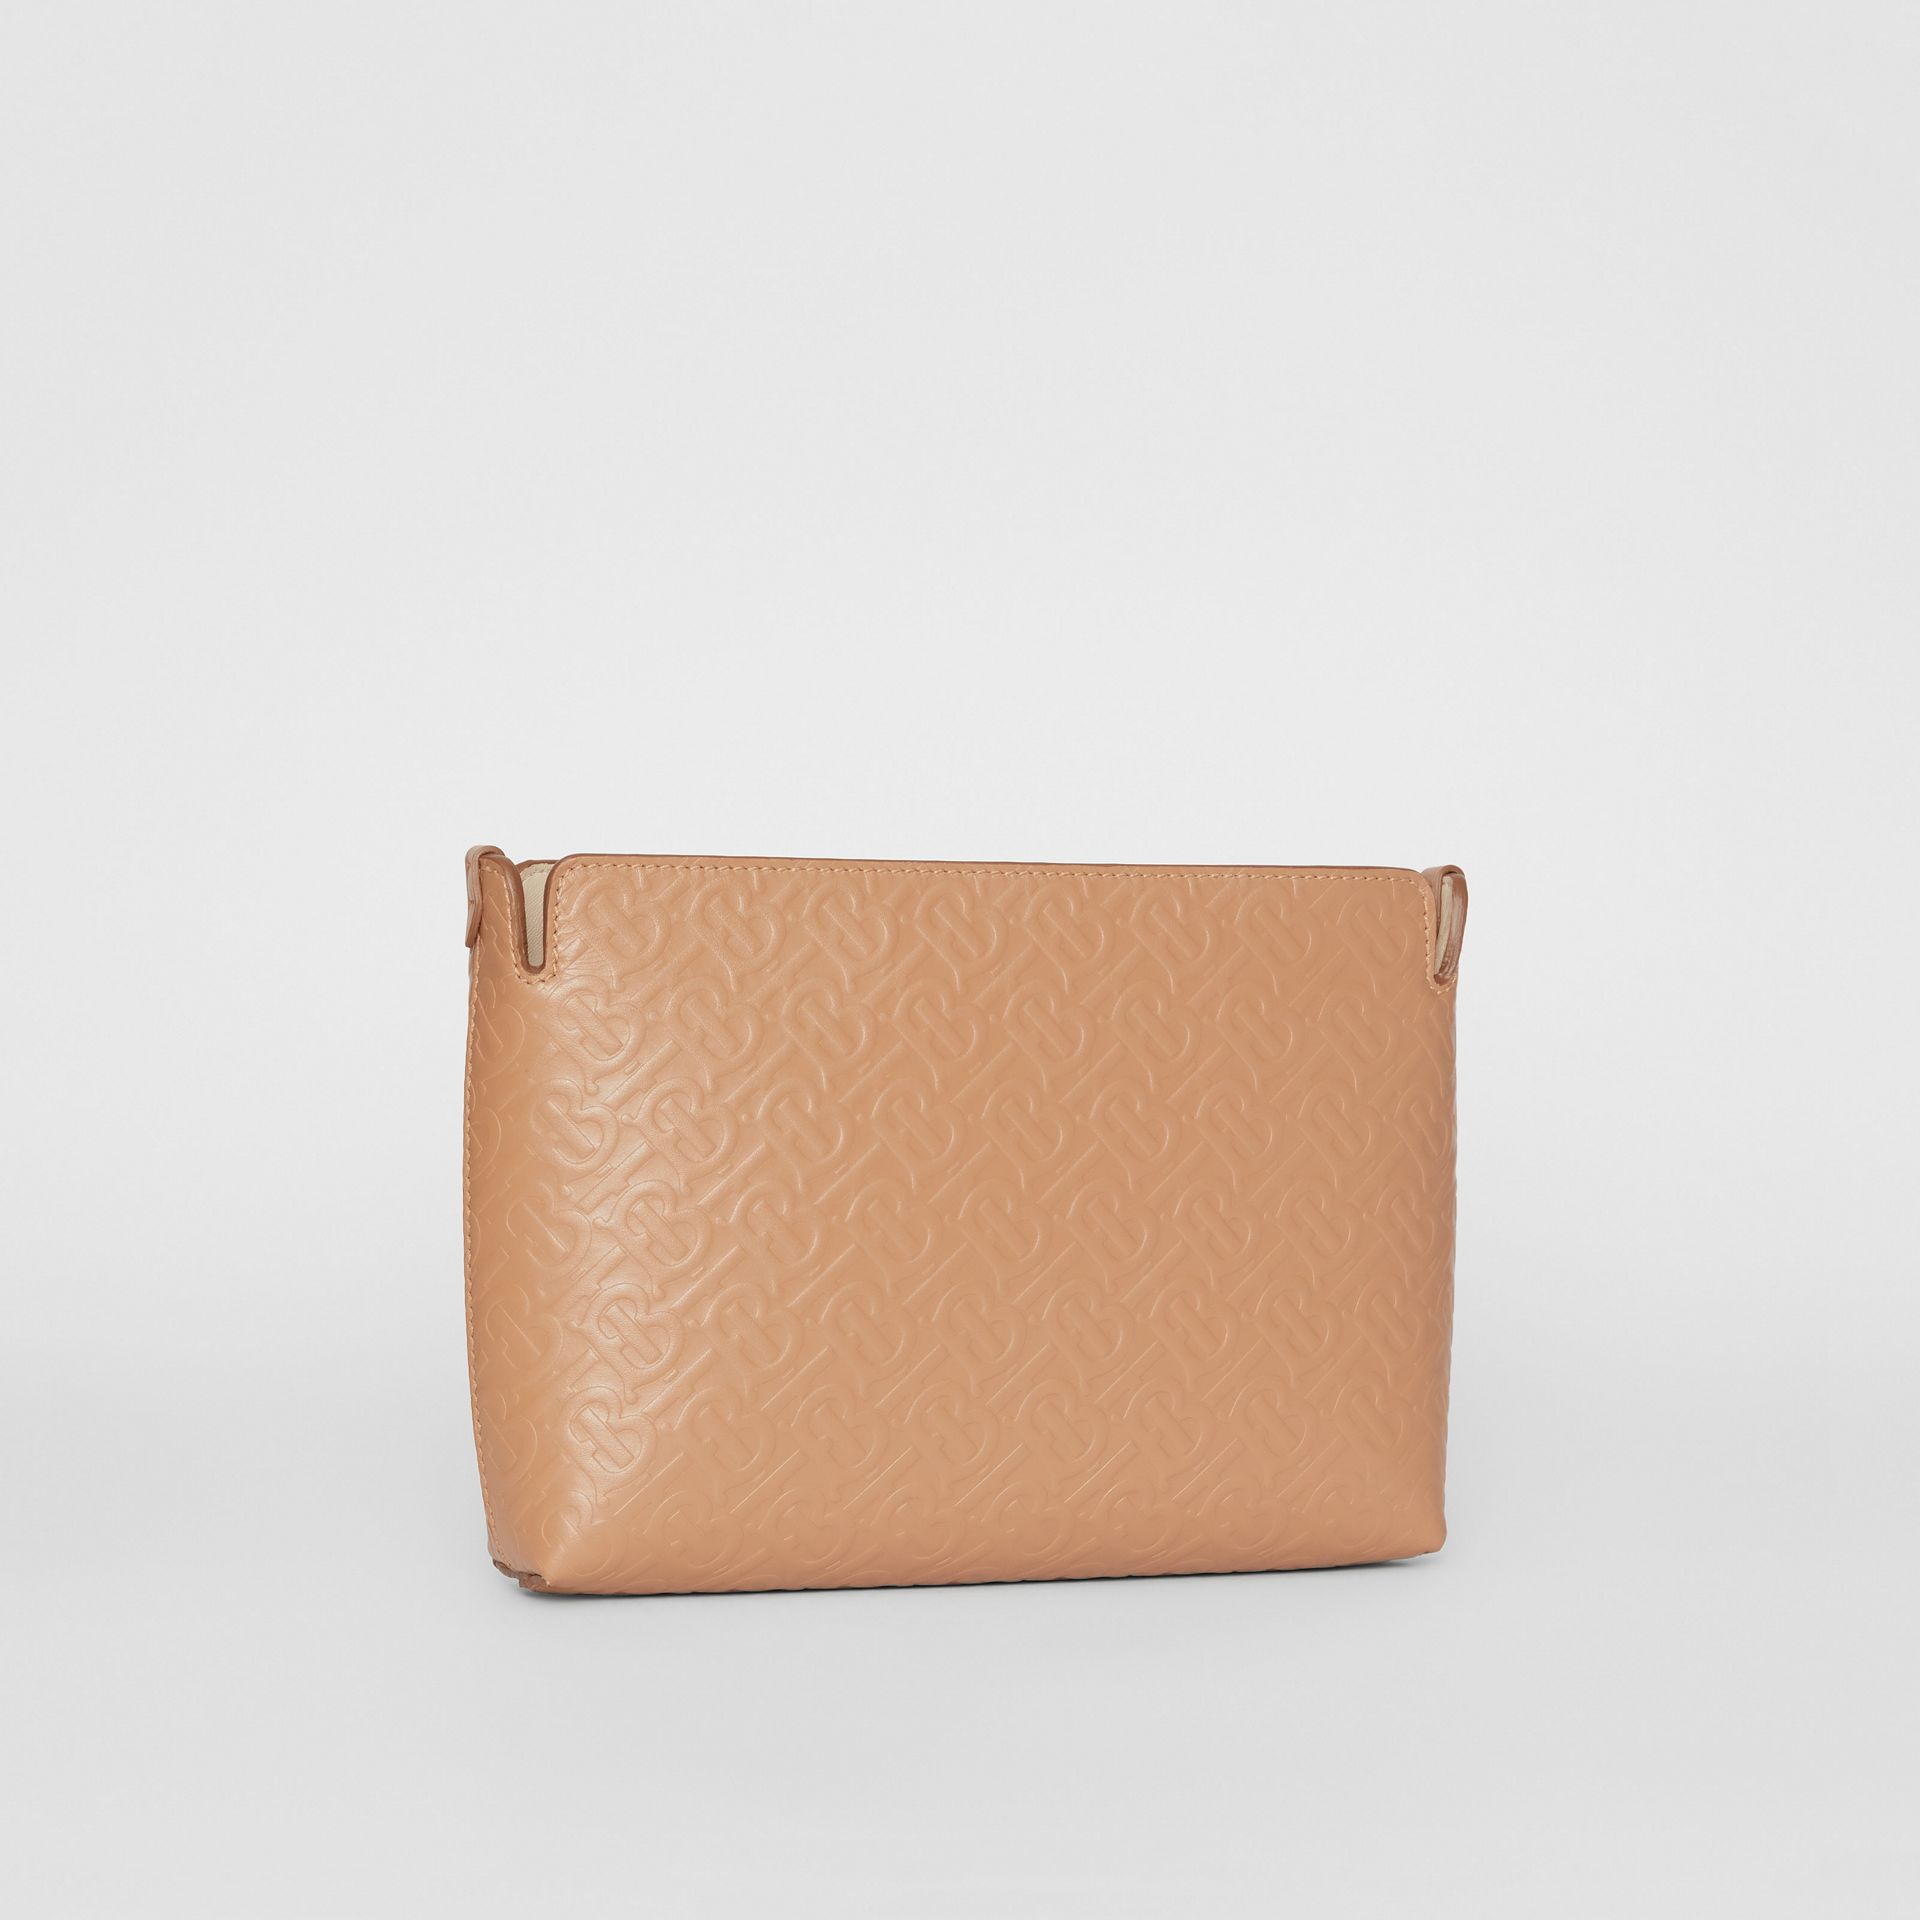 Medium Monogram Leather Clutch in Light Camel - Women | Burberry Singapore - gallery image 5